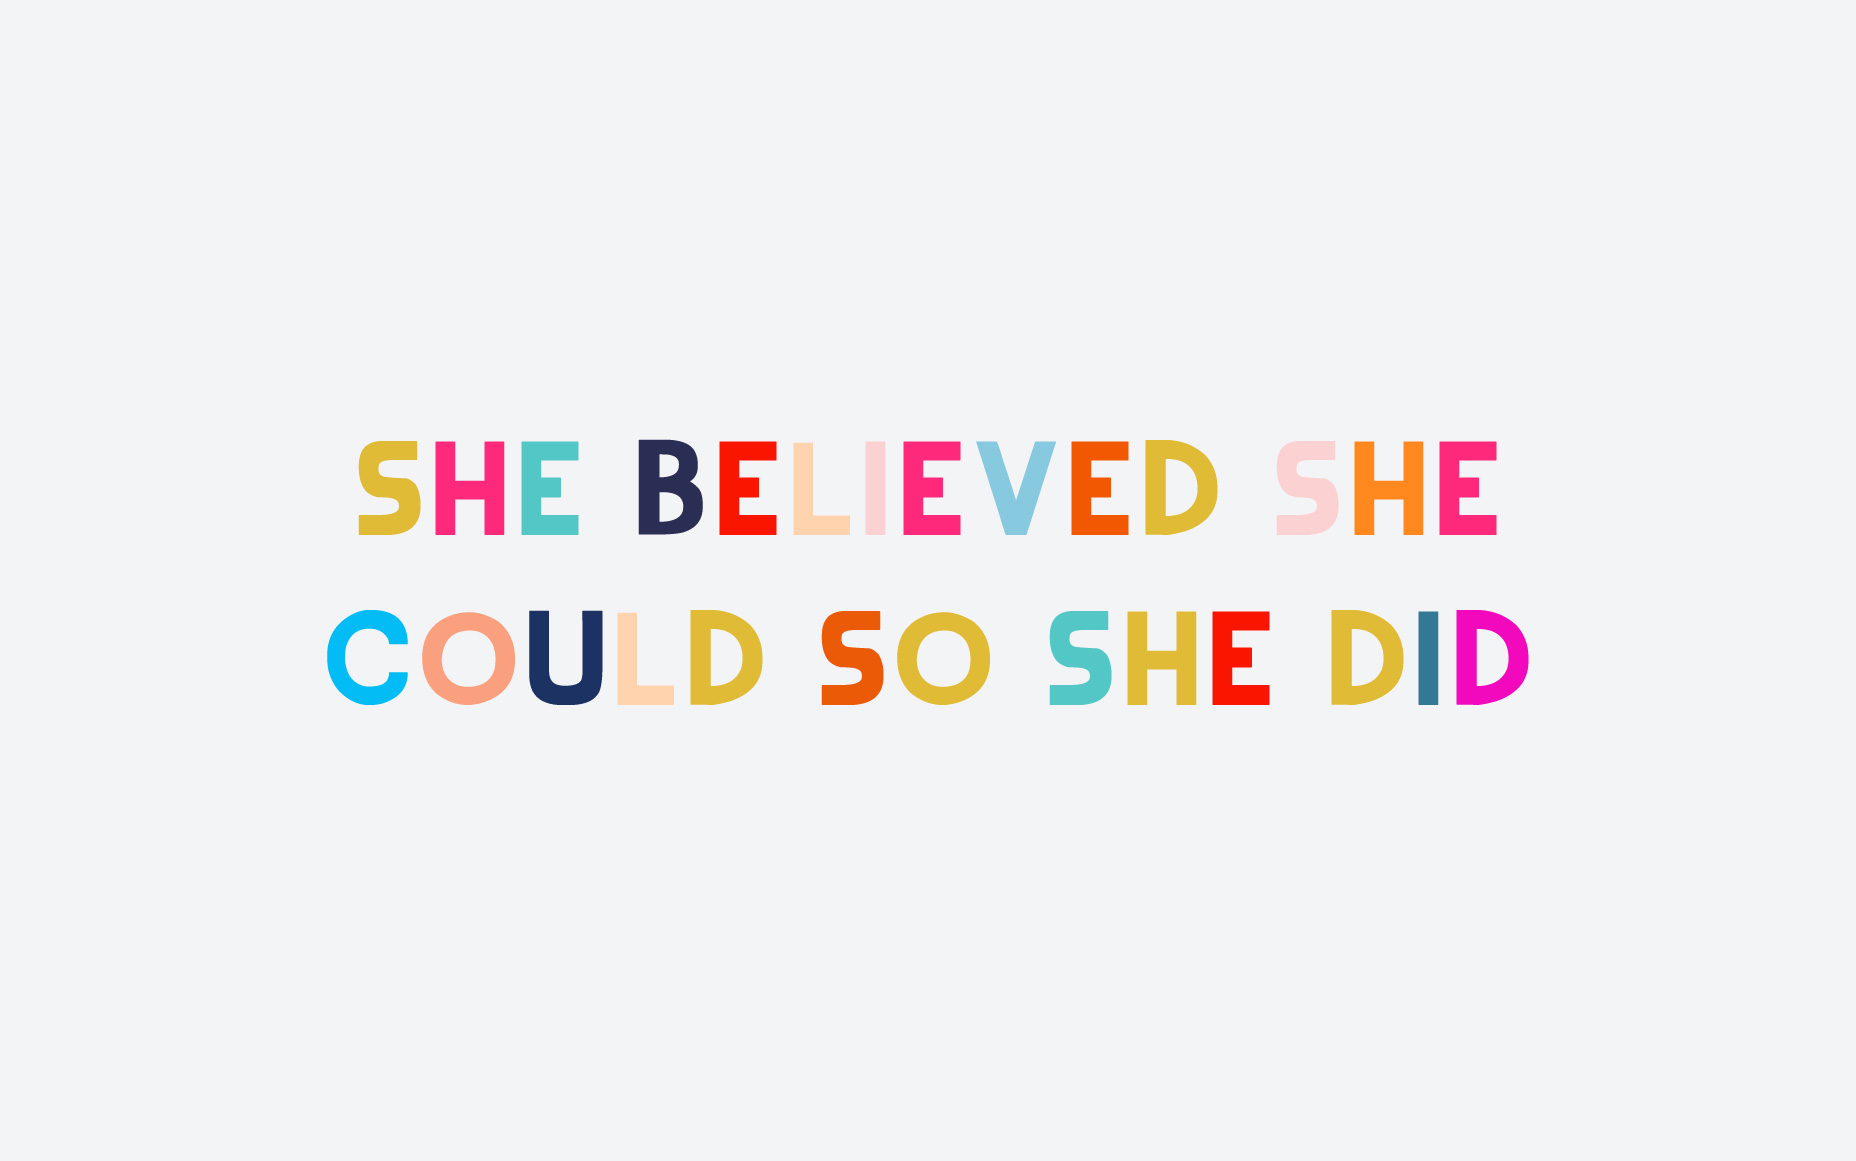 Kate Spade Quote Iphone Wallpaper Motivational Wallpapers 05 Rabbit Food For My Bunny Teeth